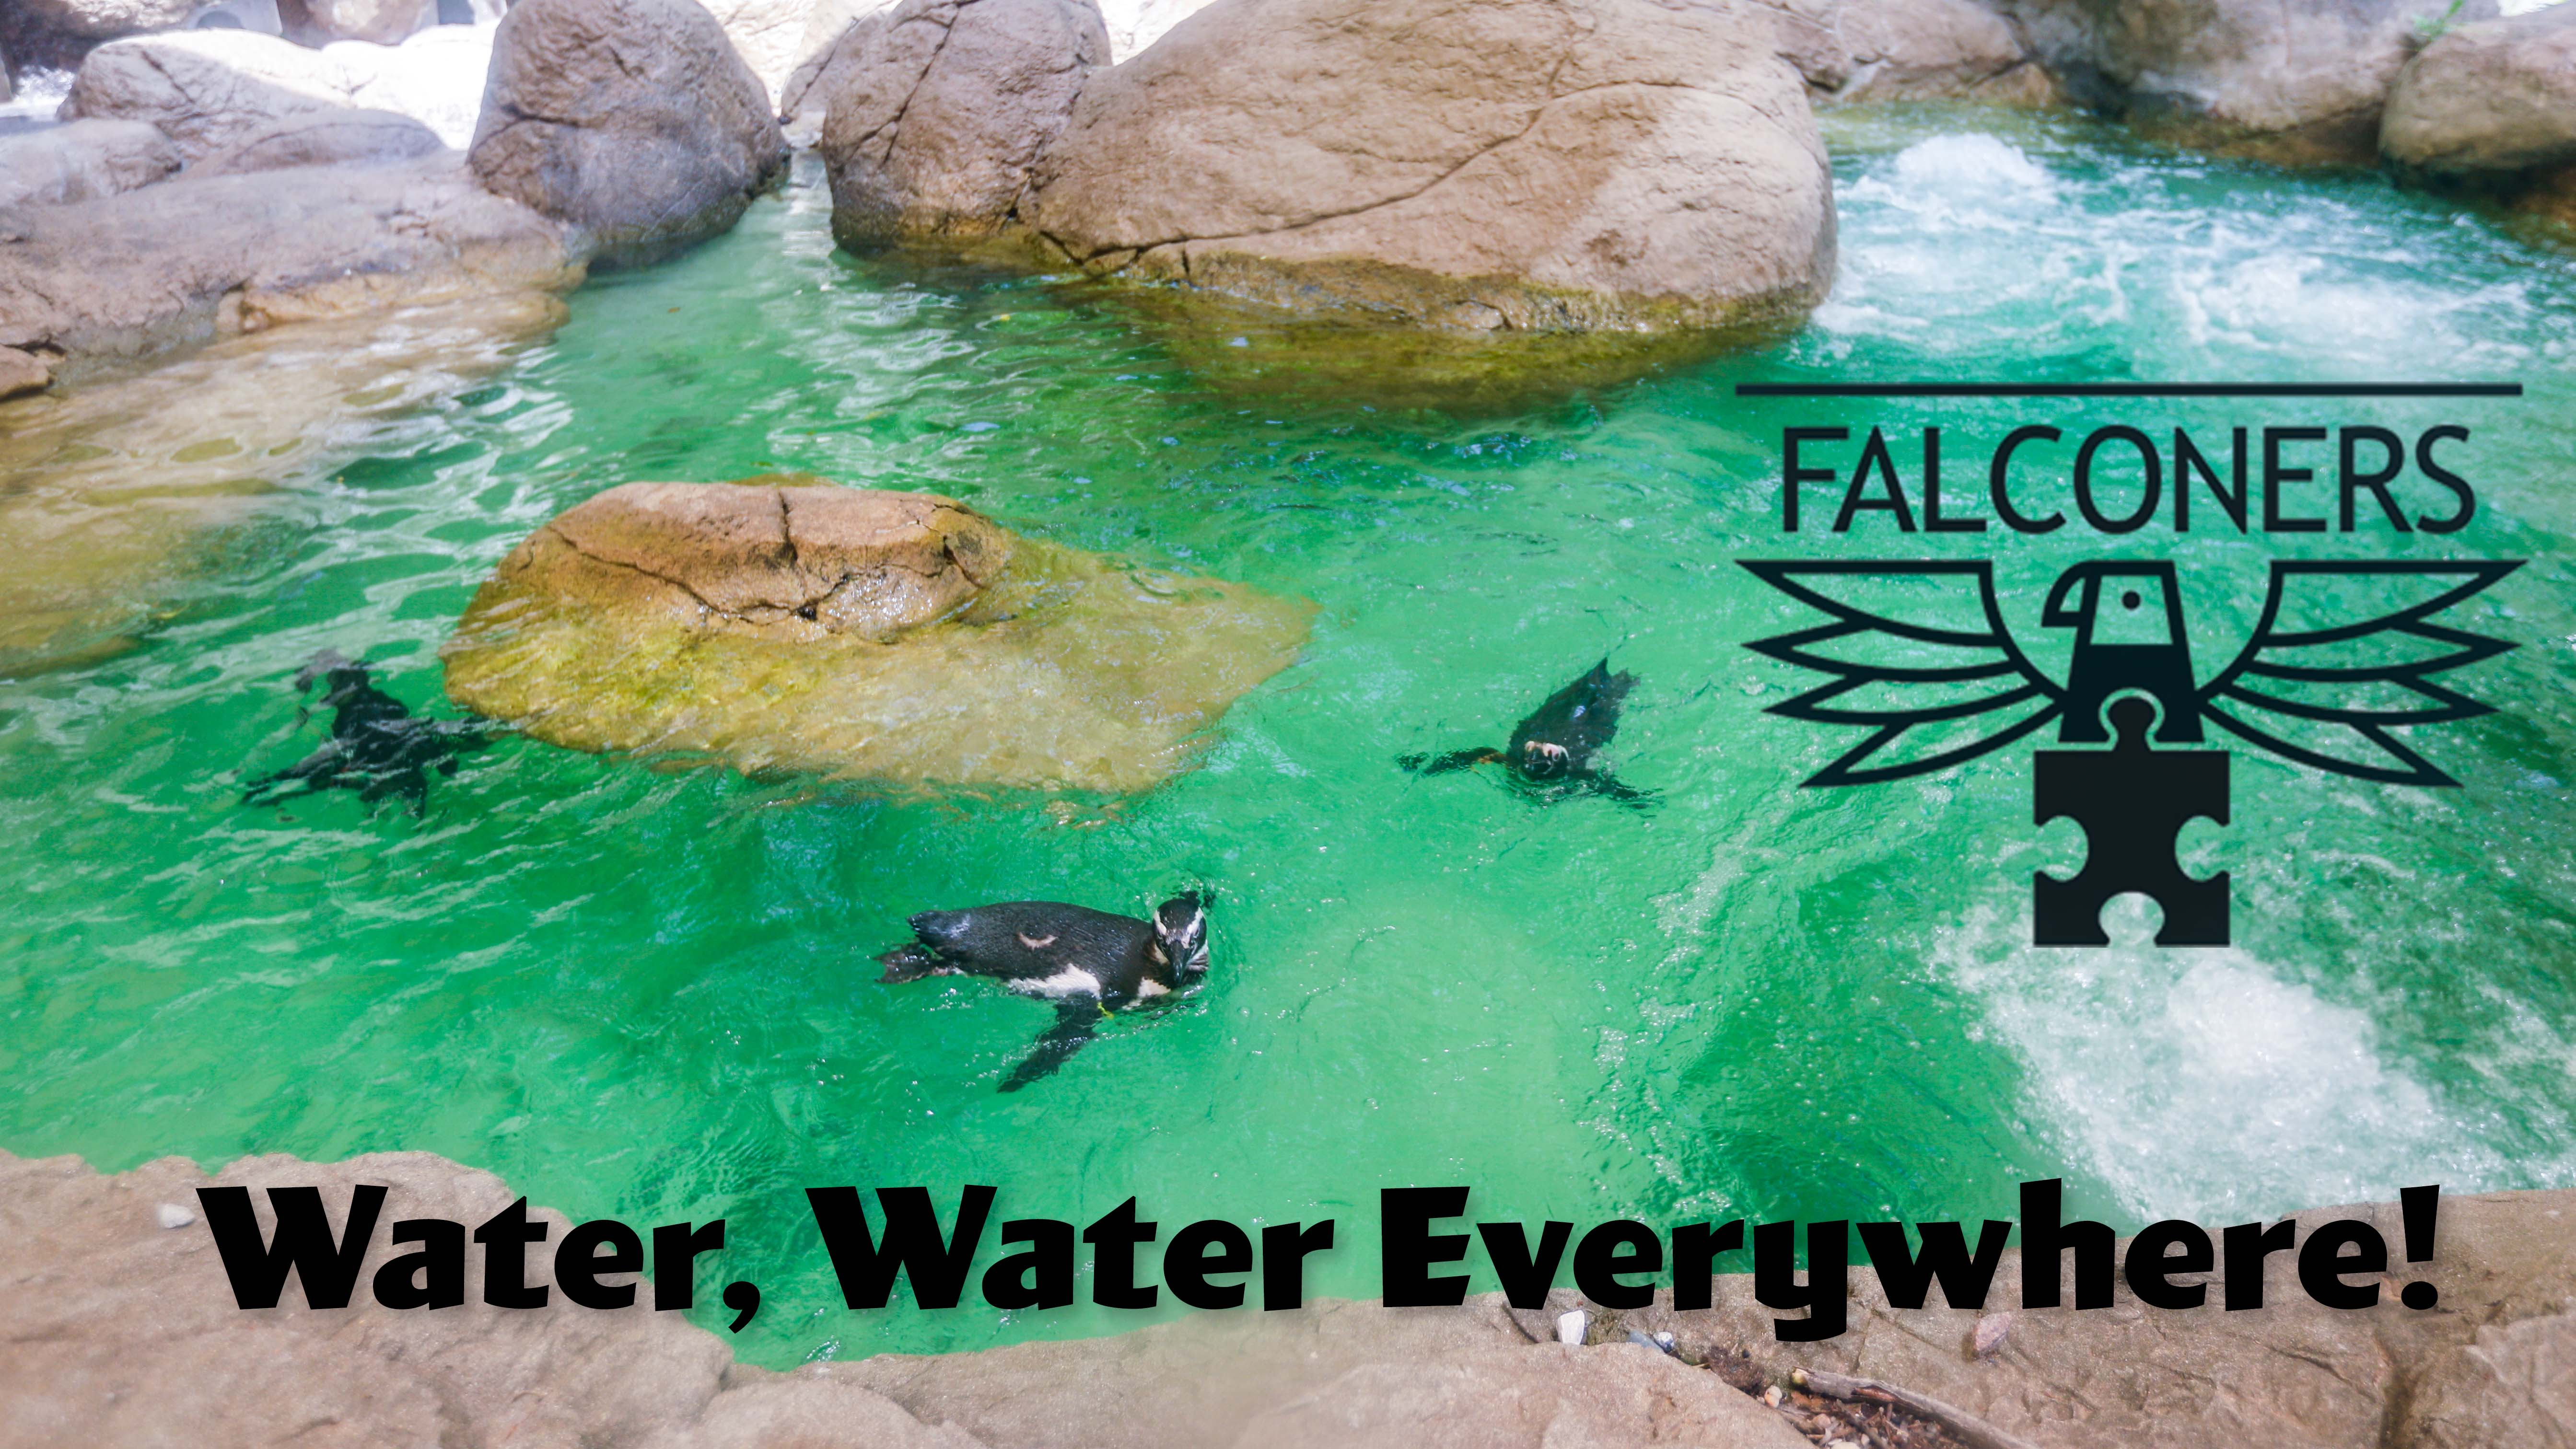 Falconers - Water, Water Everywhere banner